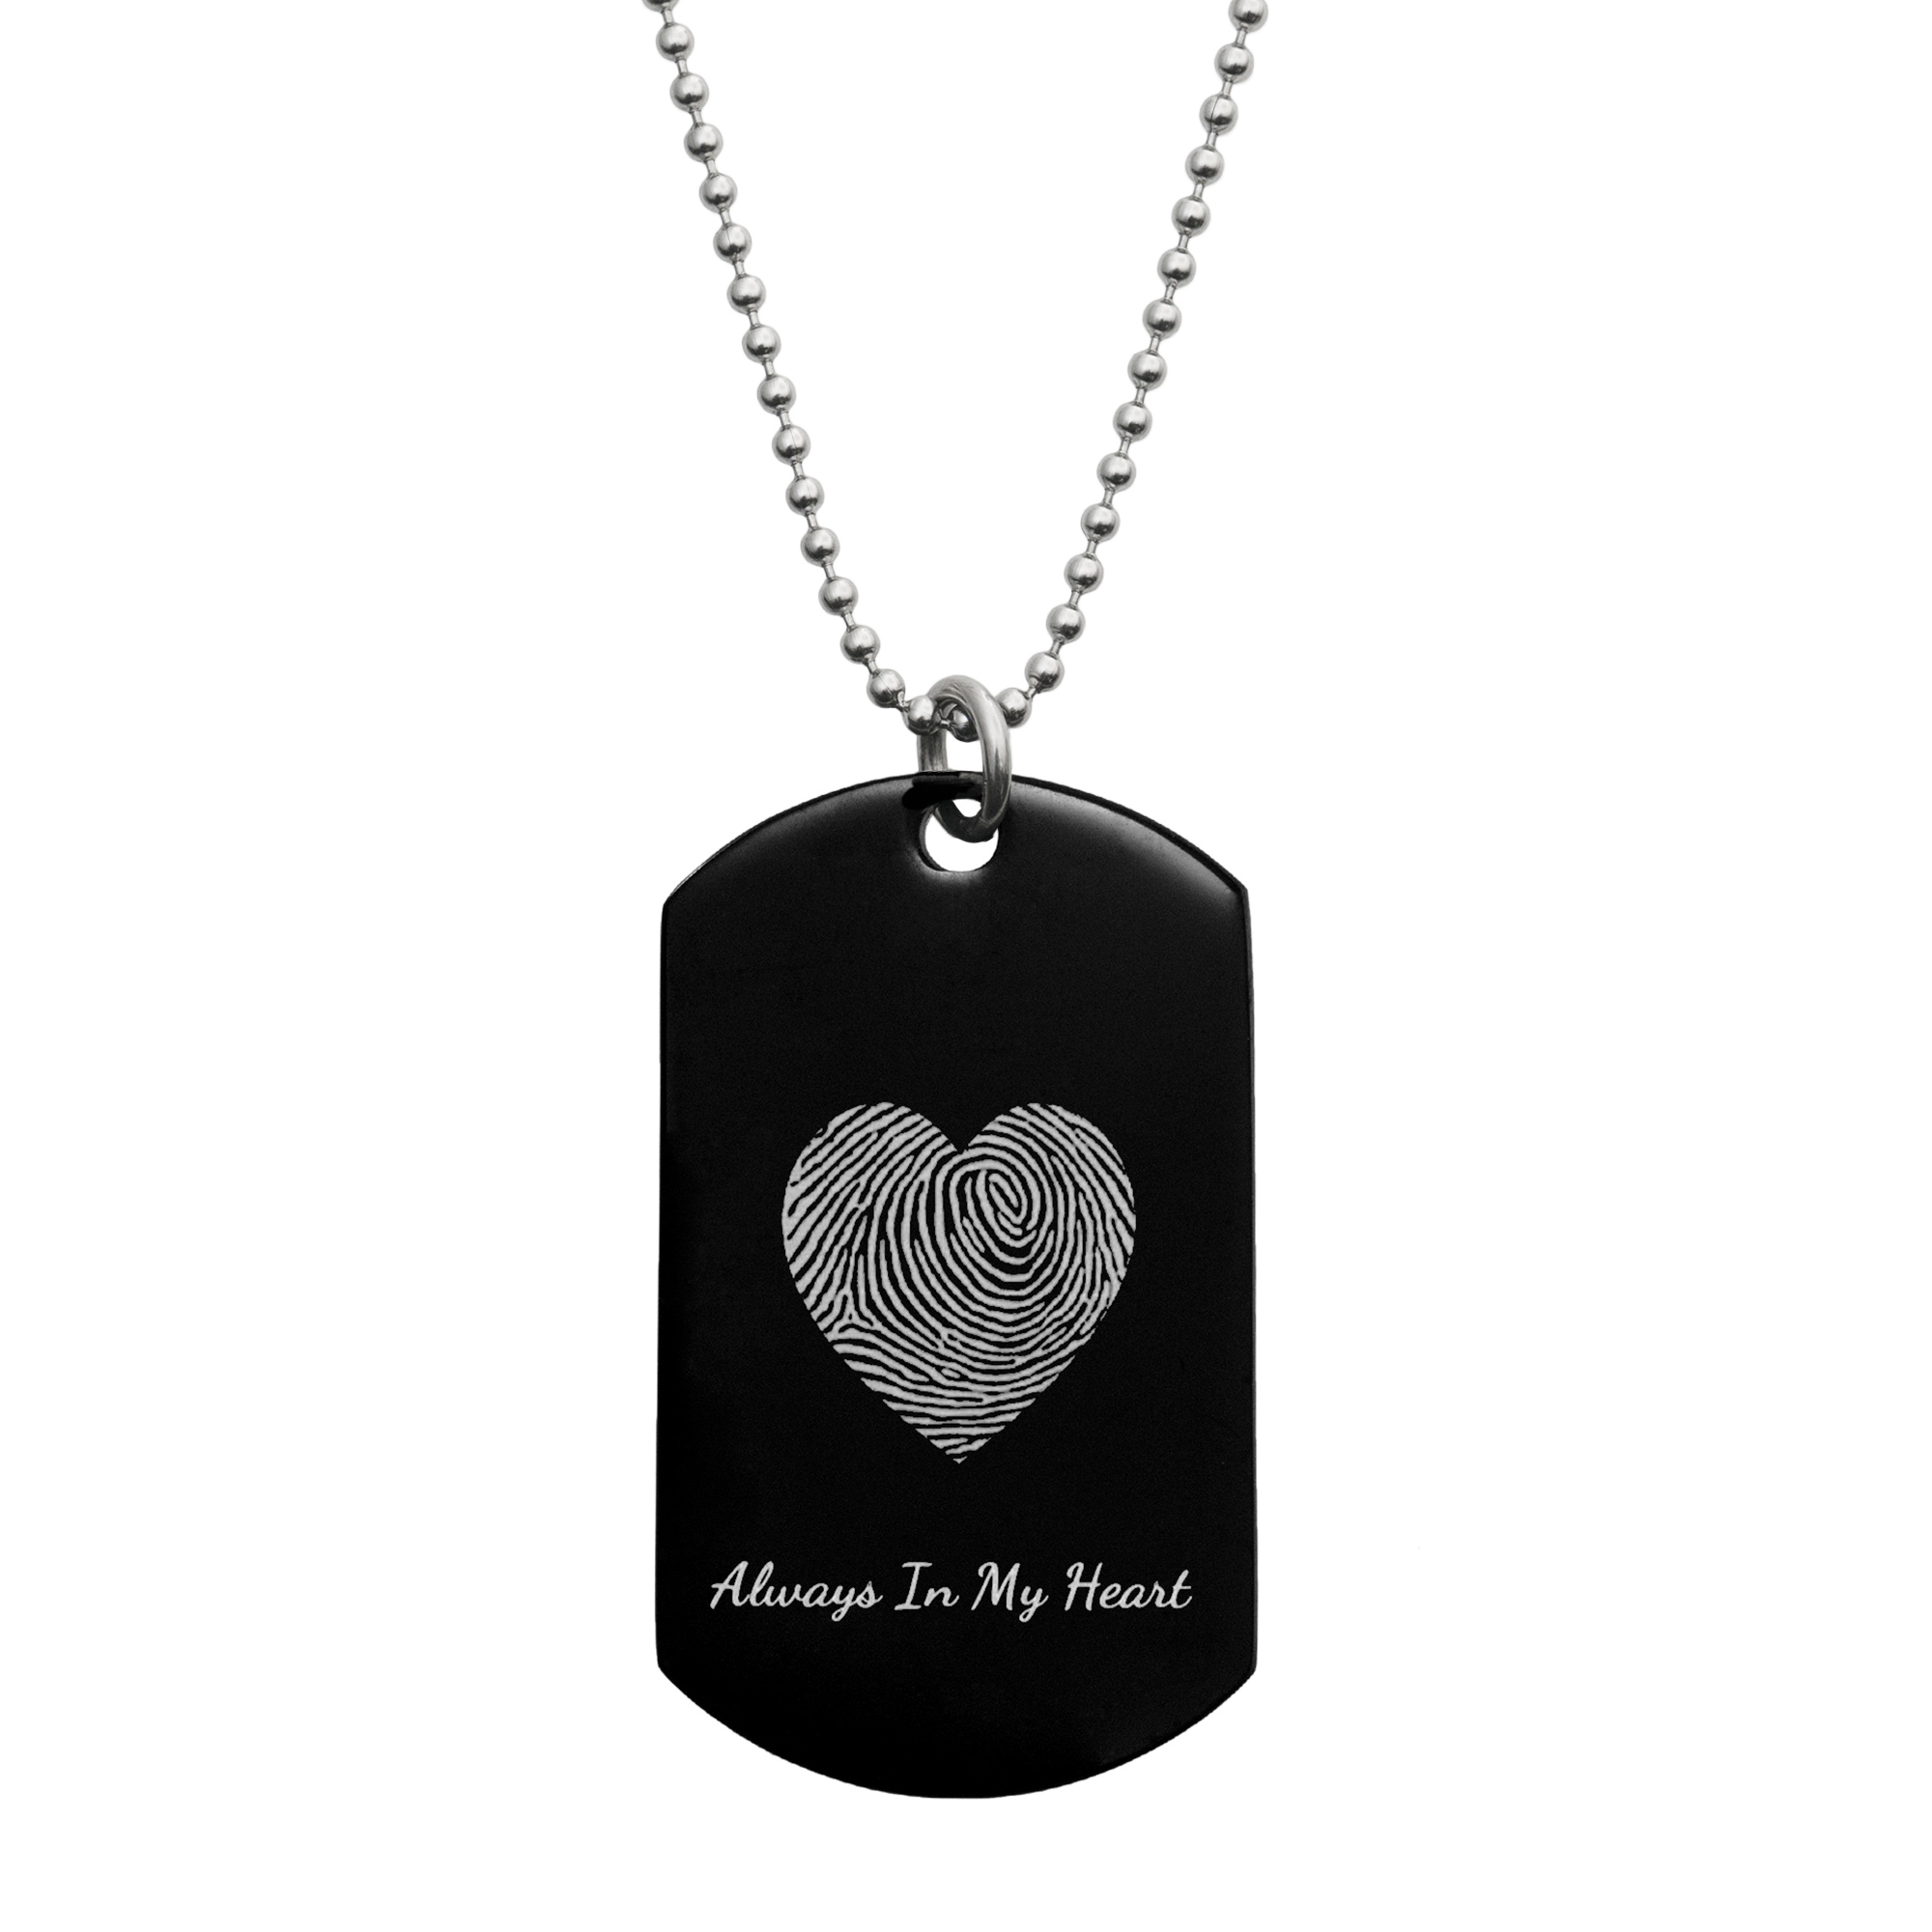 "Stainless Steel Personalized Fingerprint + Text Engraving Custom Dog Tag w/ Dot Ball Chain Necklace 24"" - Handmade"